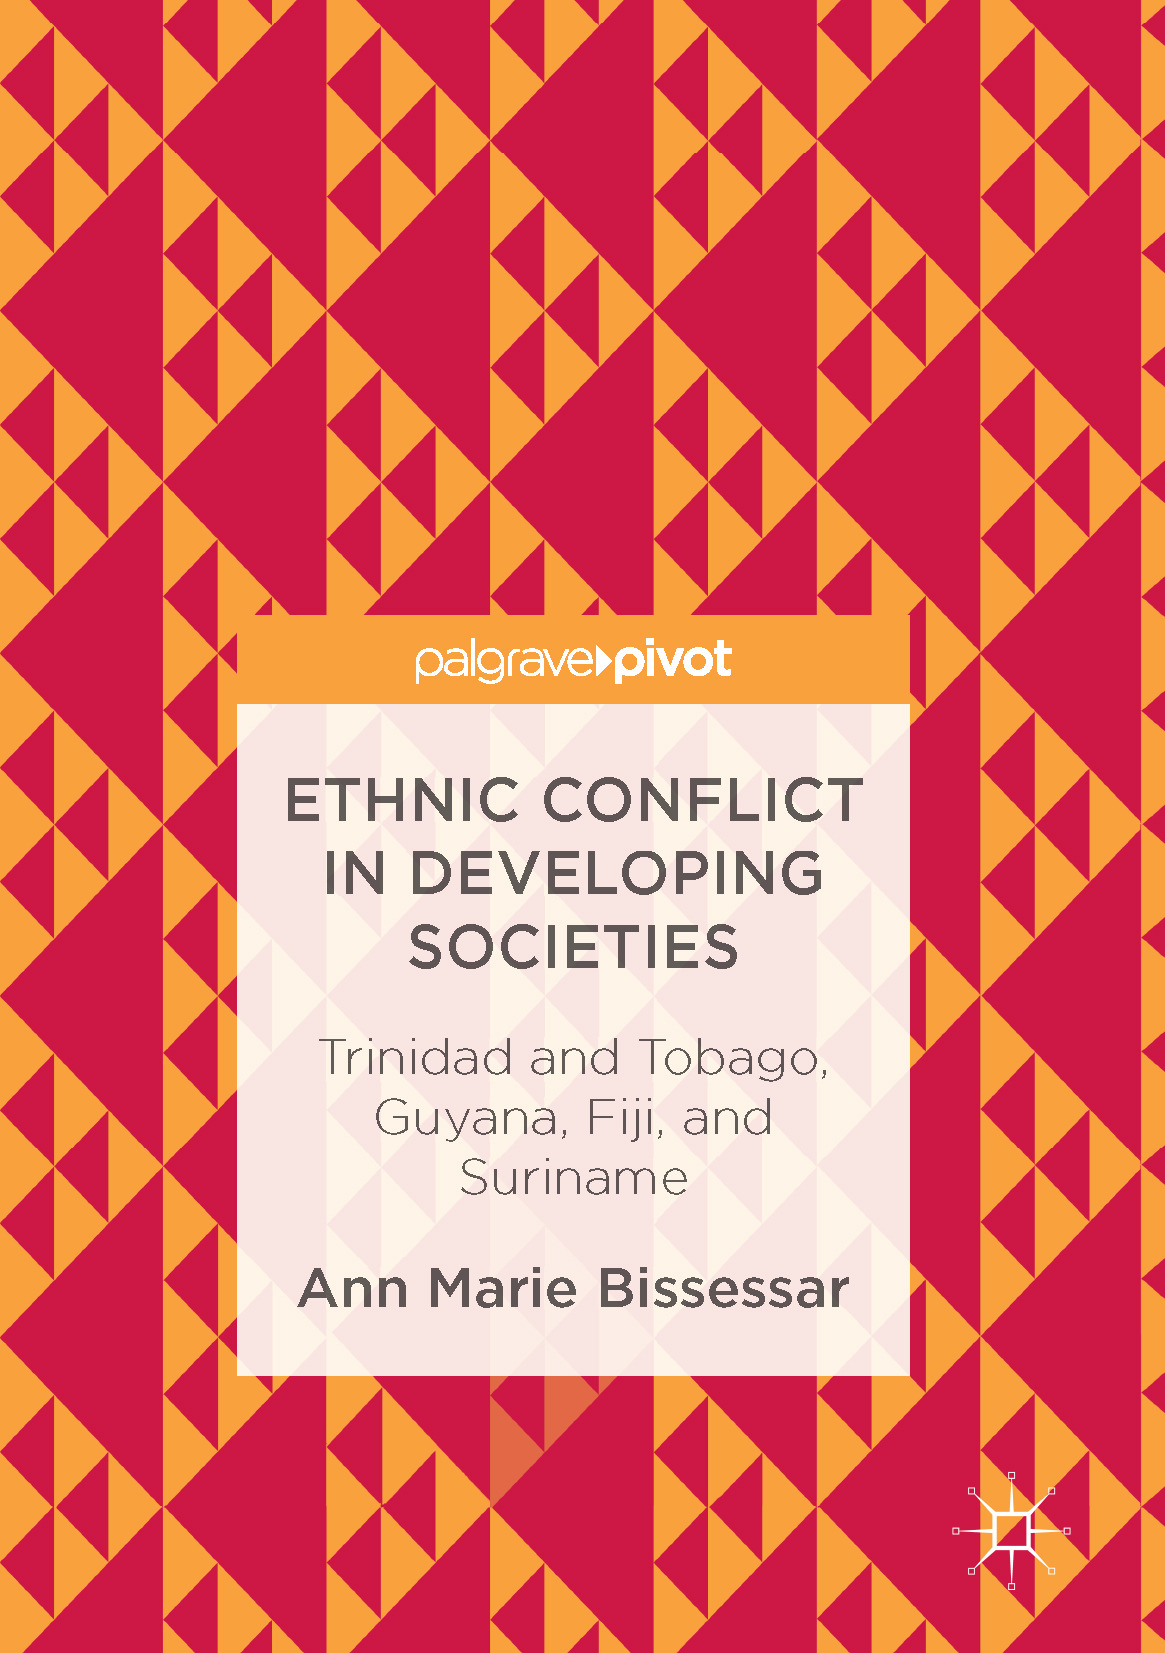 Bissessar, Ann Marie - Ethnic Conflict in Developing Societies, ebook